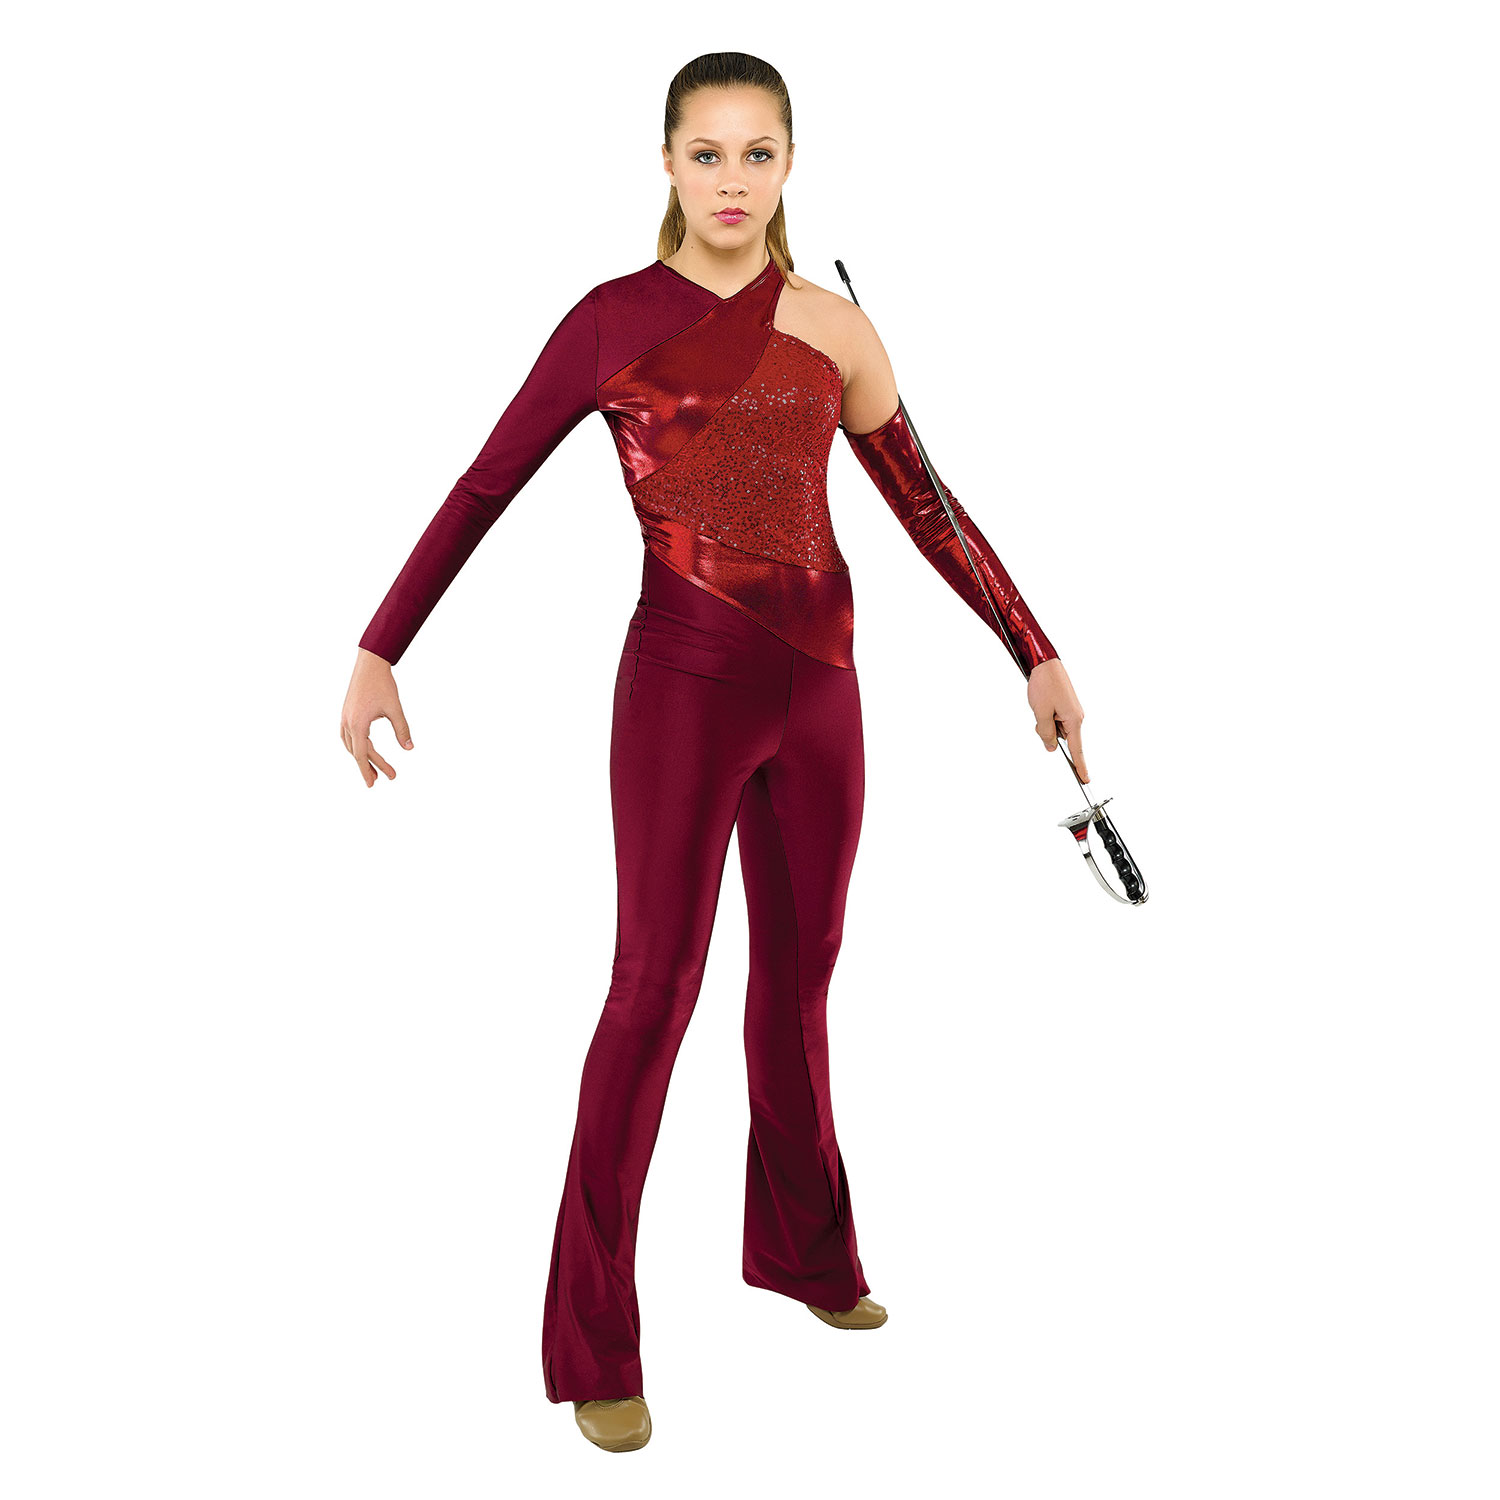 Guard Uniforms: Style 5004